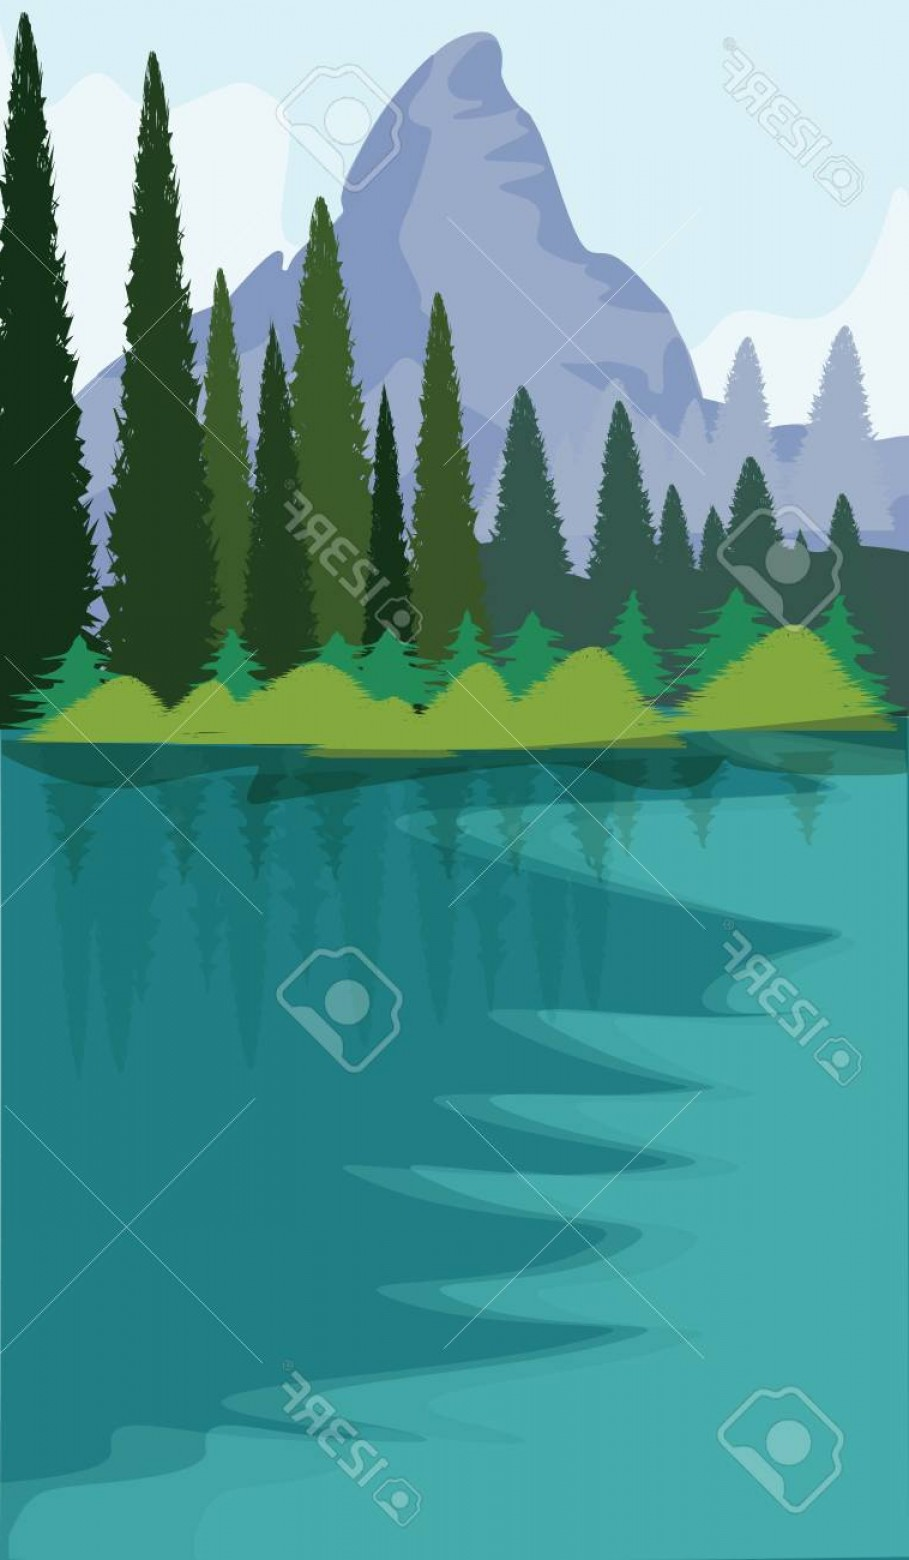 River Vector Art: Photostock Vector Nature Mountains And Fir Forest River Flat Style Vector Art Illustration Travel Poster